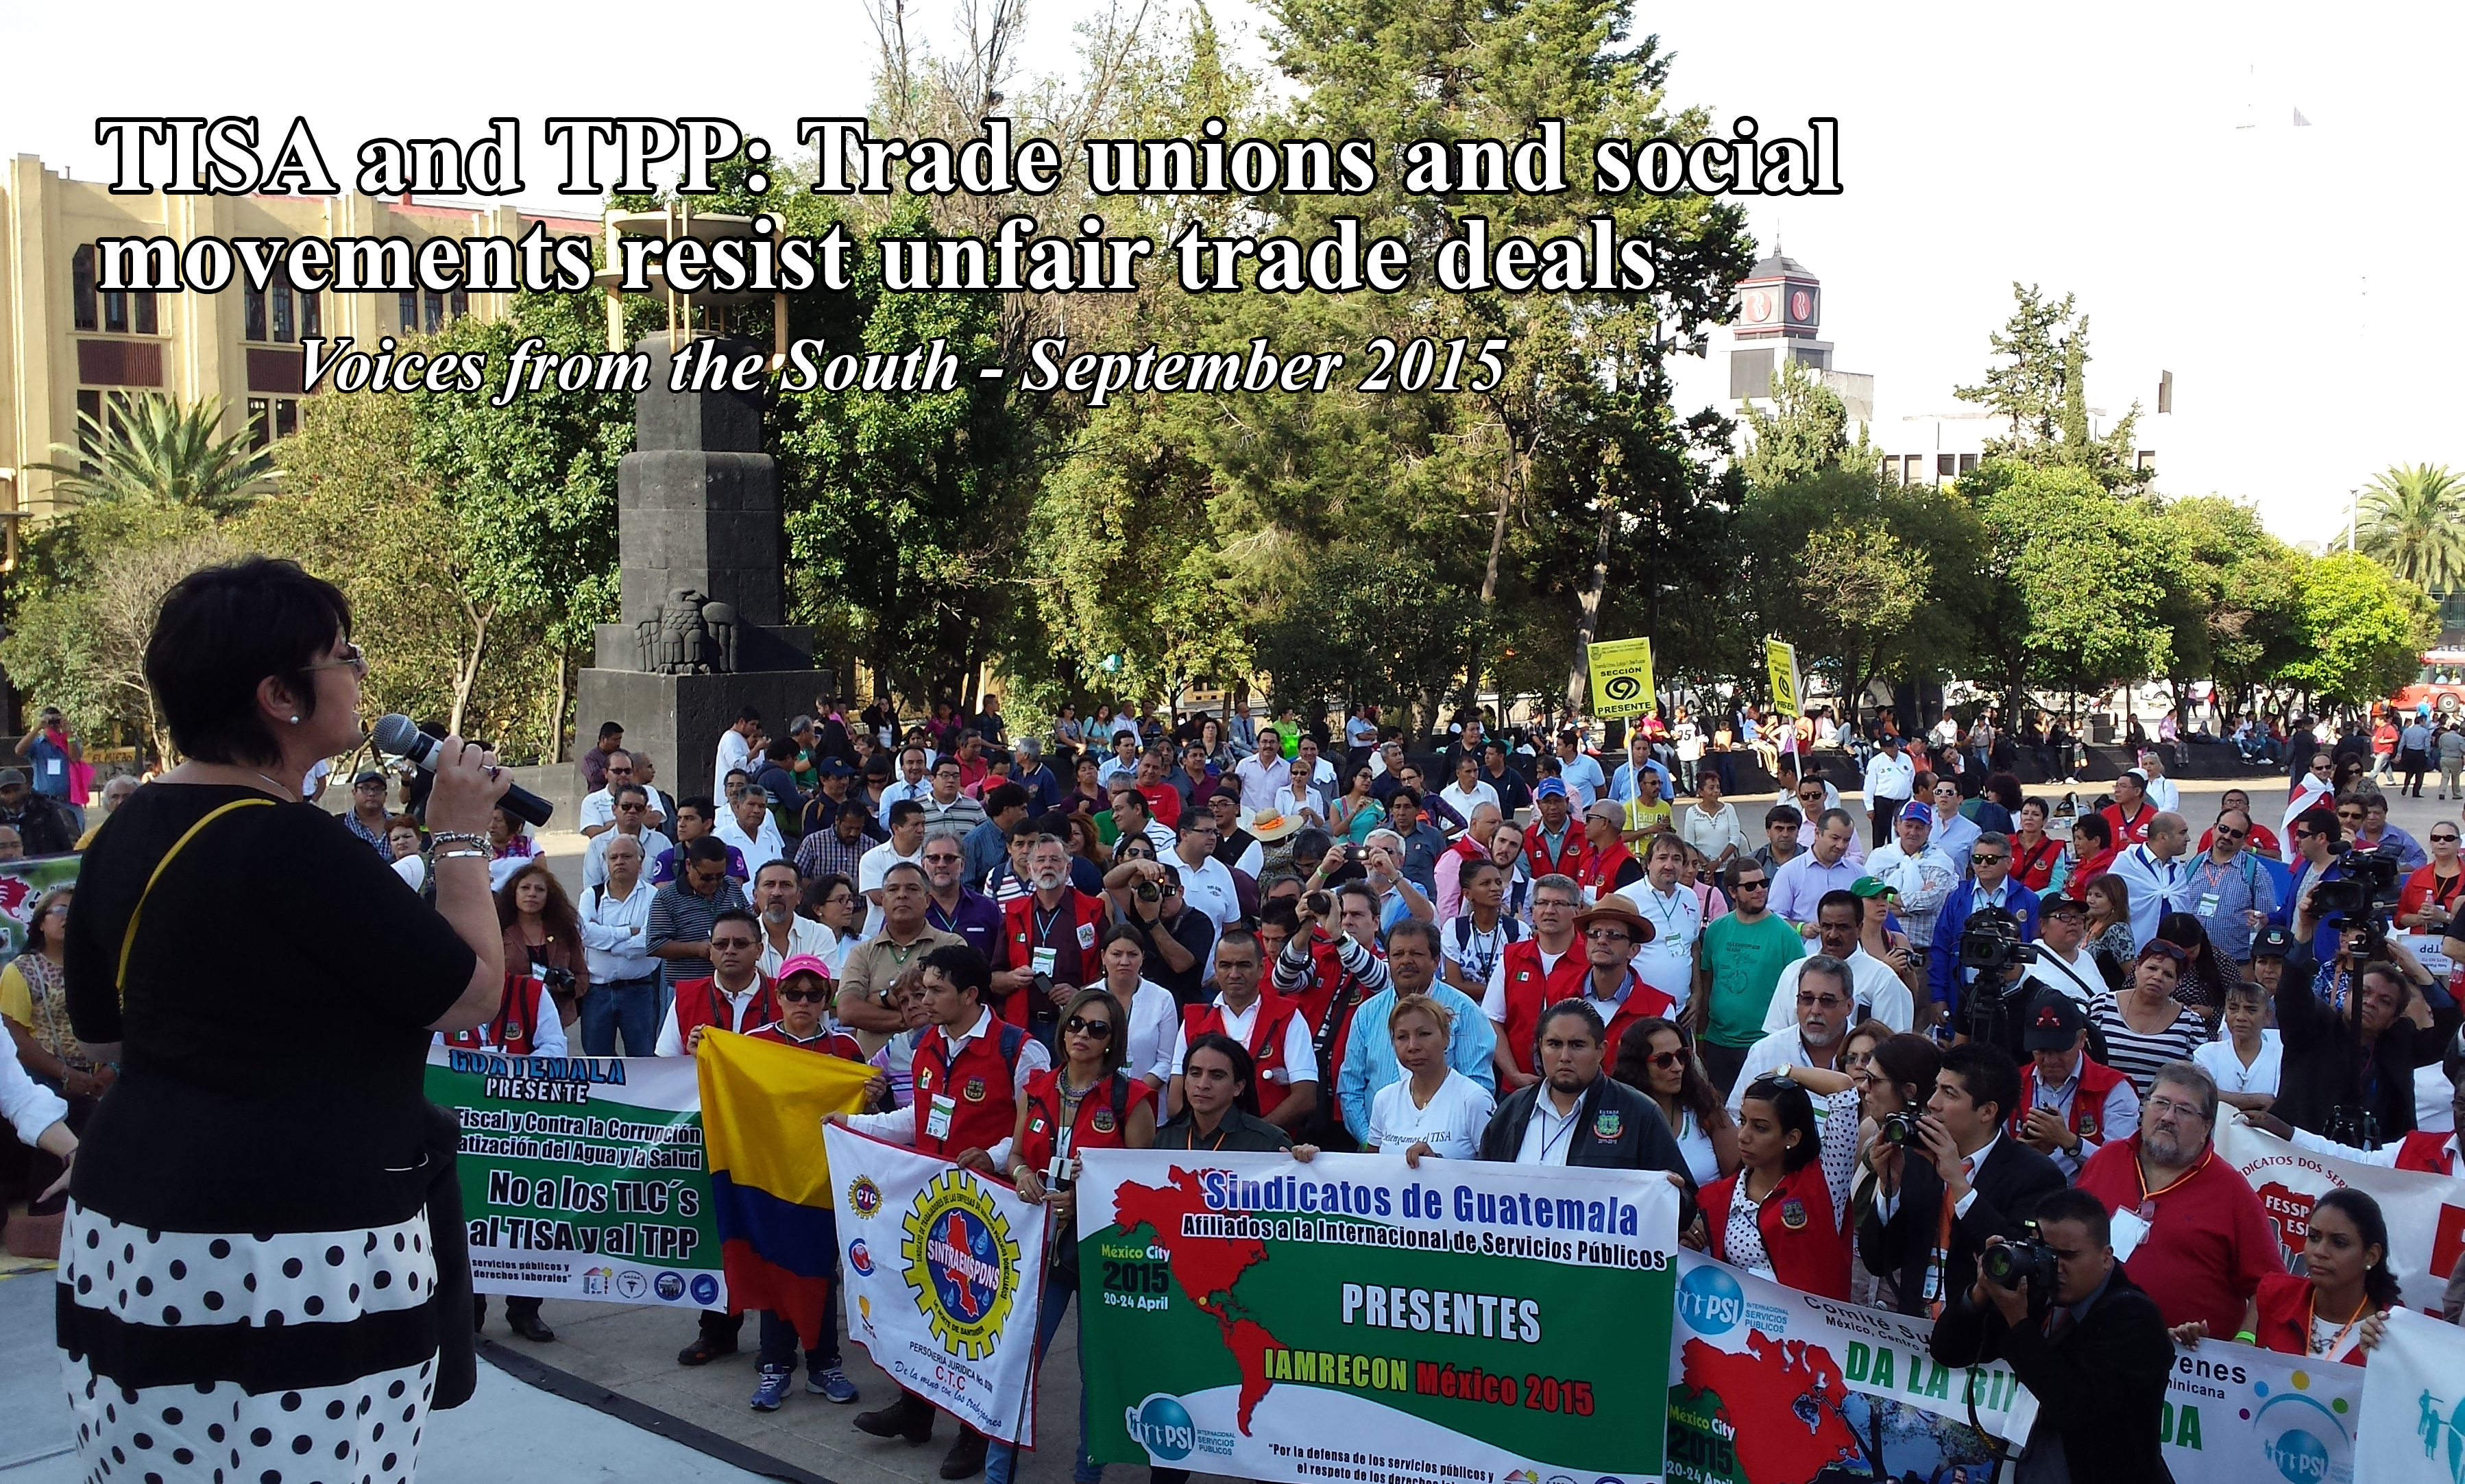 TISA and TPP: Trade Unions and social movements resist unfair trade deals